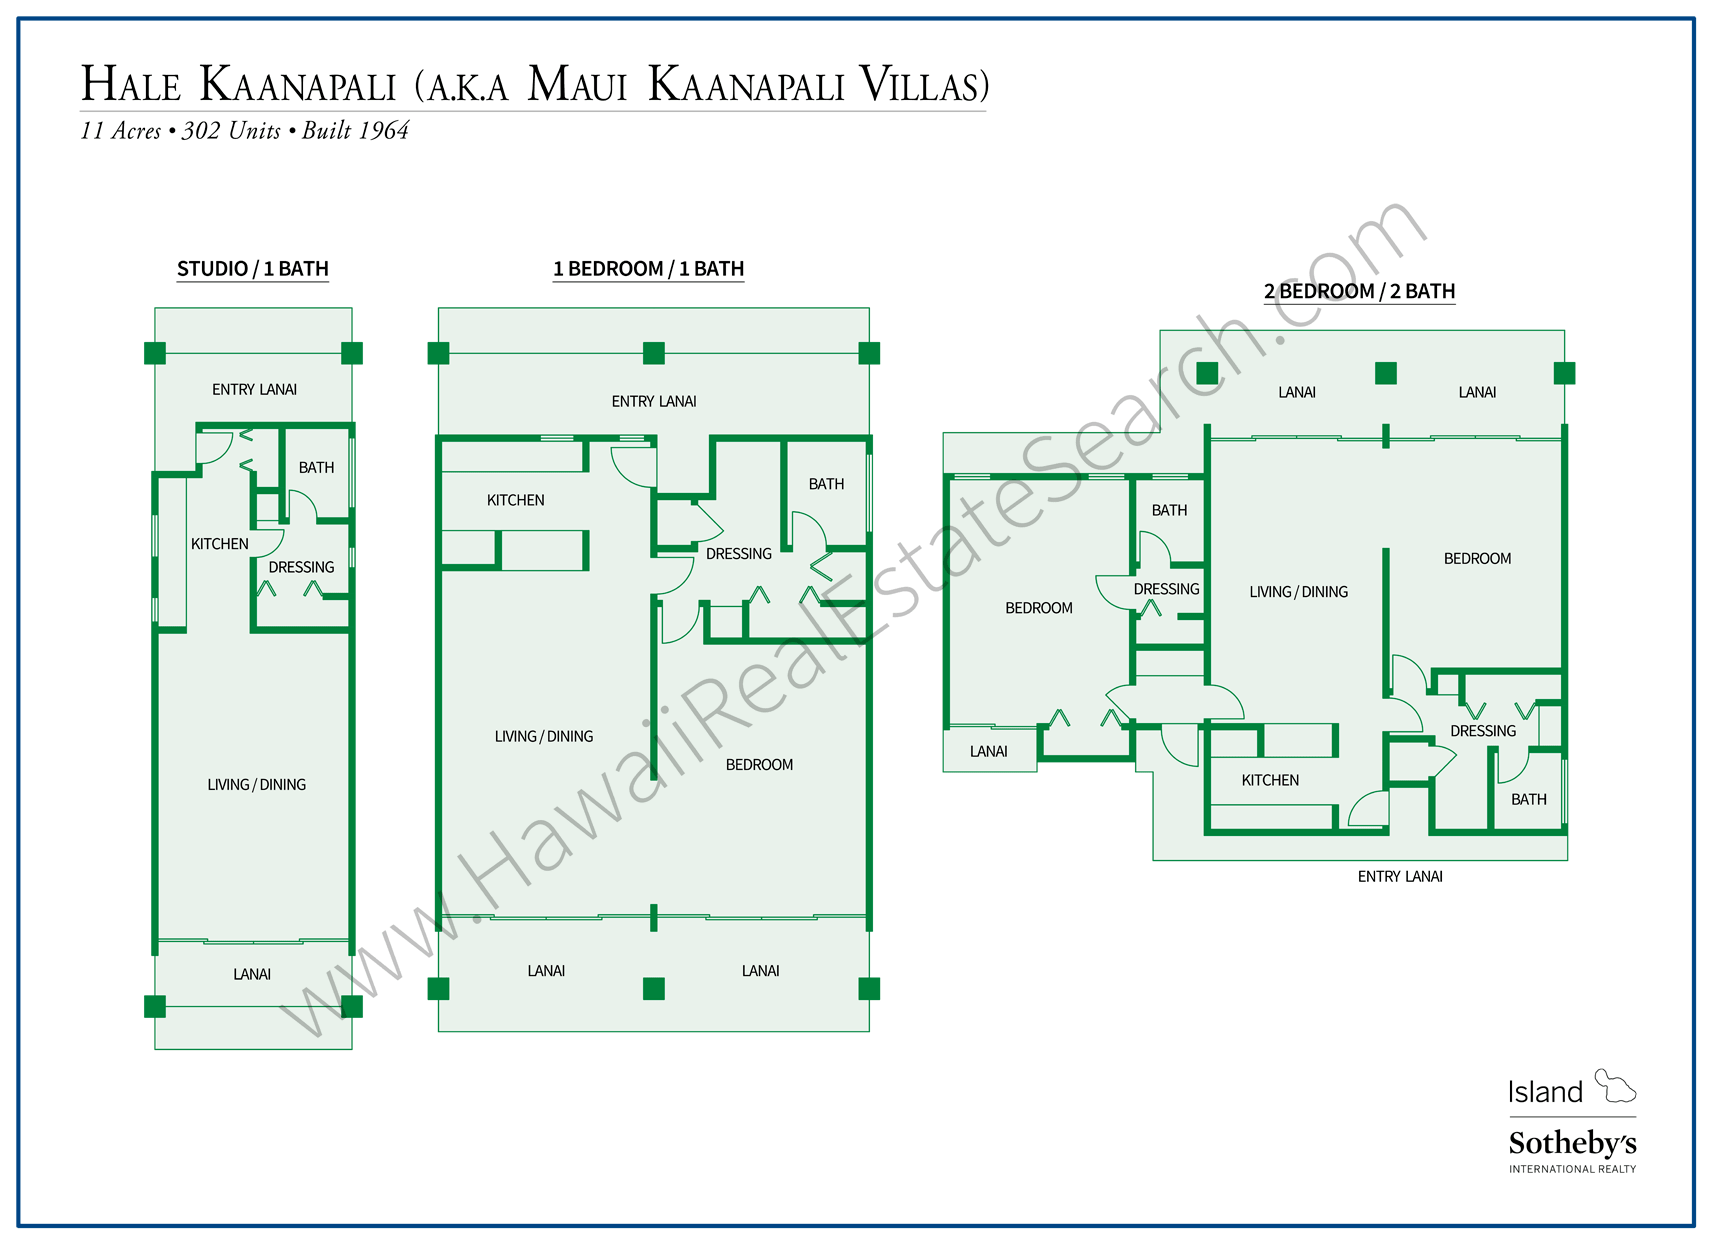 Maui Kaanapali Villas Floor Plans